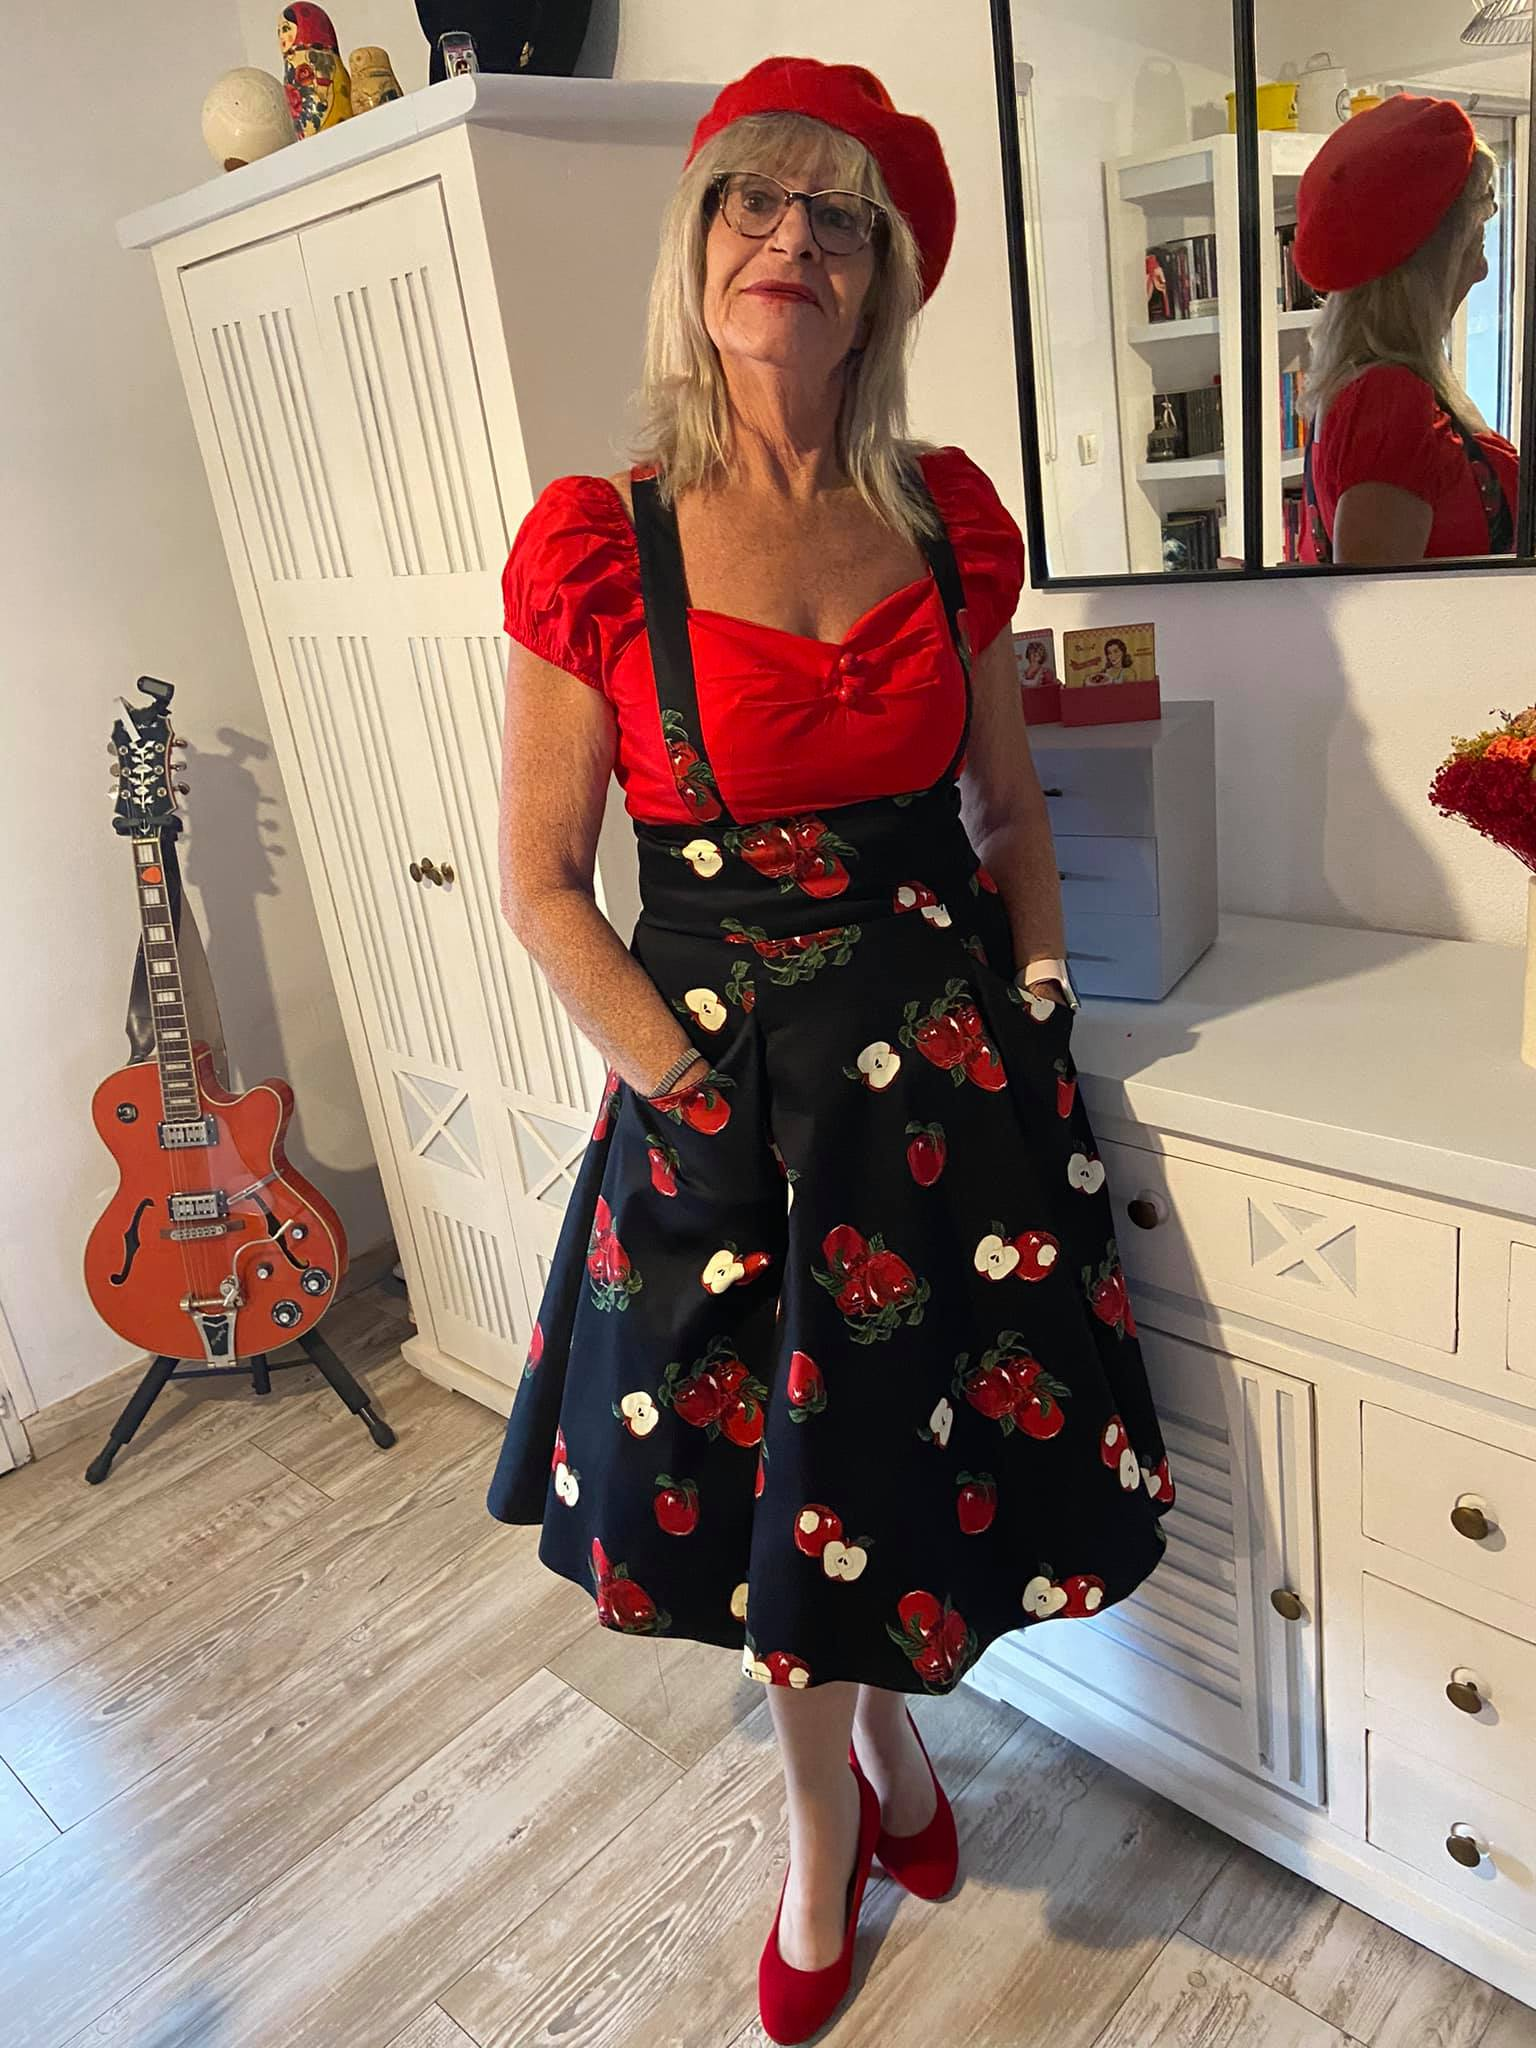 Jupe Swing Retro Rockabilly Pin-Up Années 50 Collectif